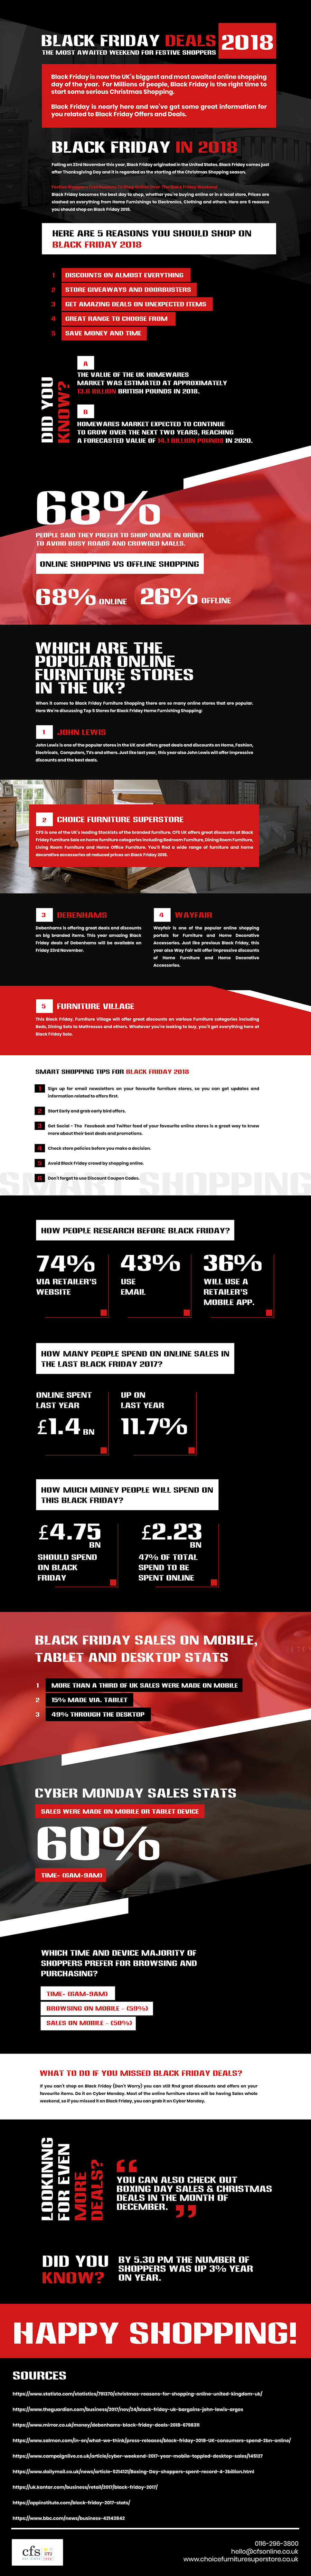 Black Friday 2018: Infographic